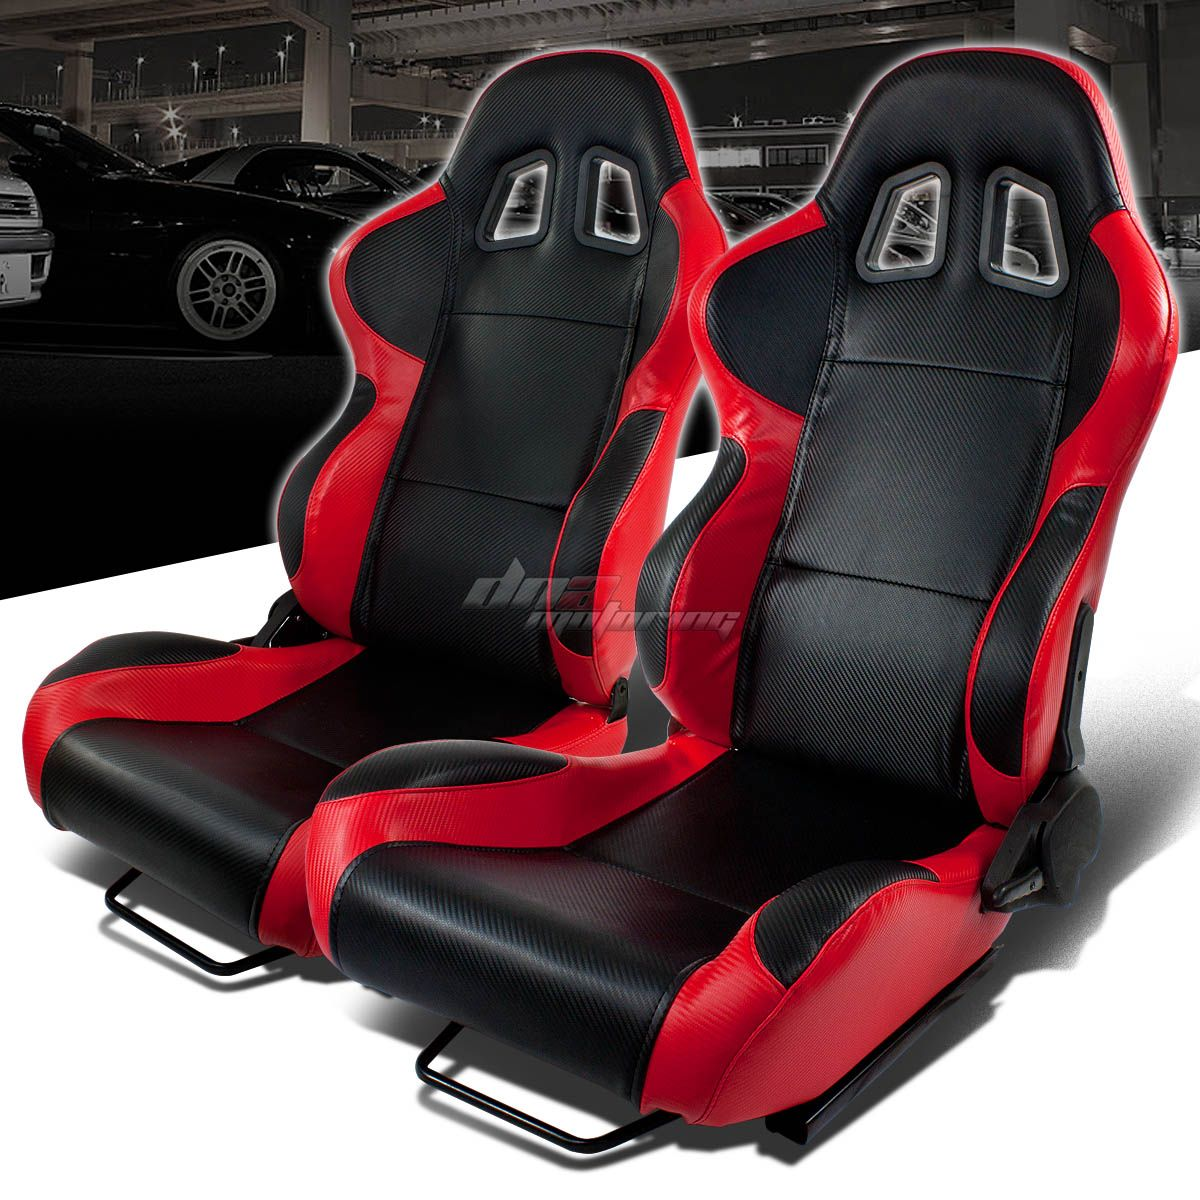 Full Reclinable Left Right Pair Red Black Trim Pvc Leather